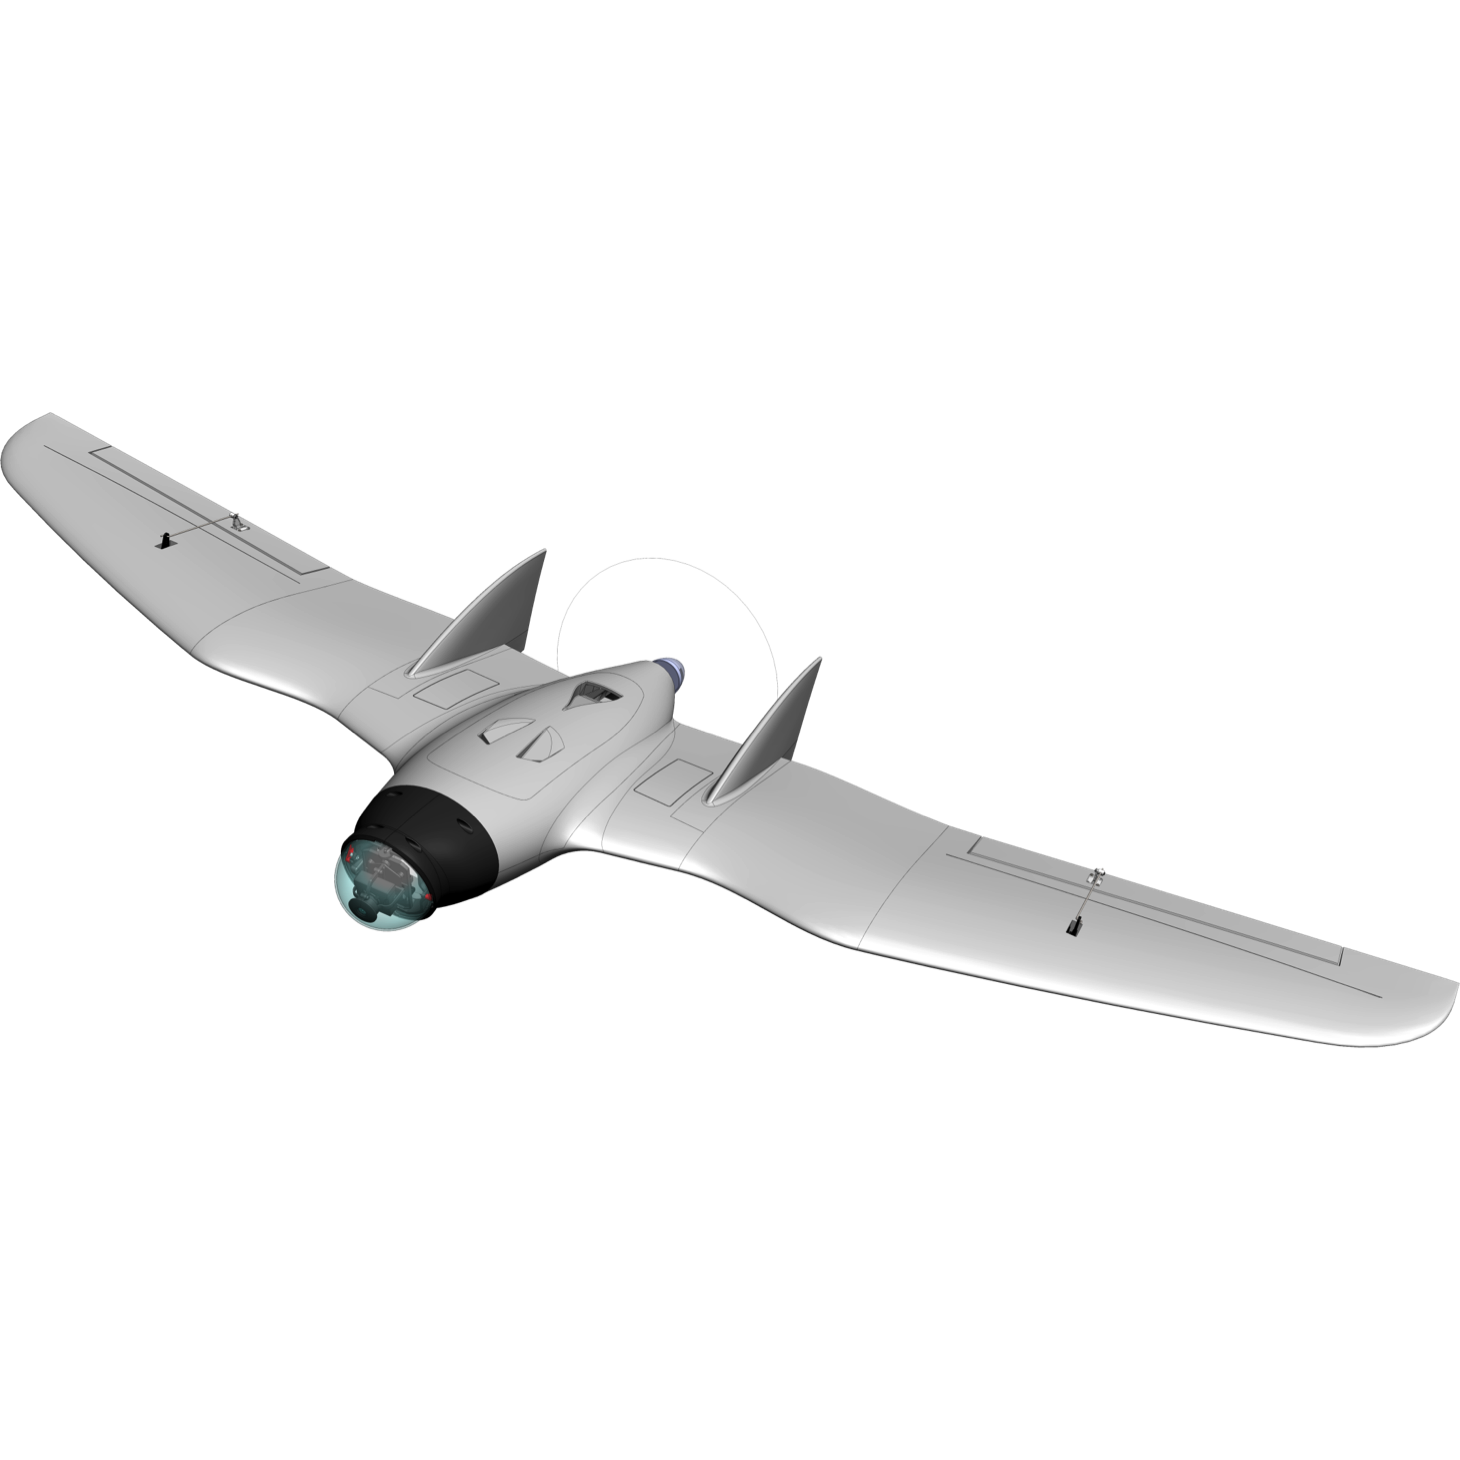 RVJET 1950 mm FPV Flying Wing Kit with Pan and Tilt Dome- Pre order